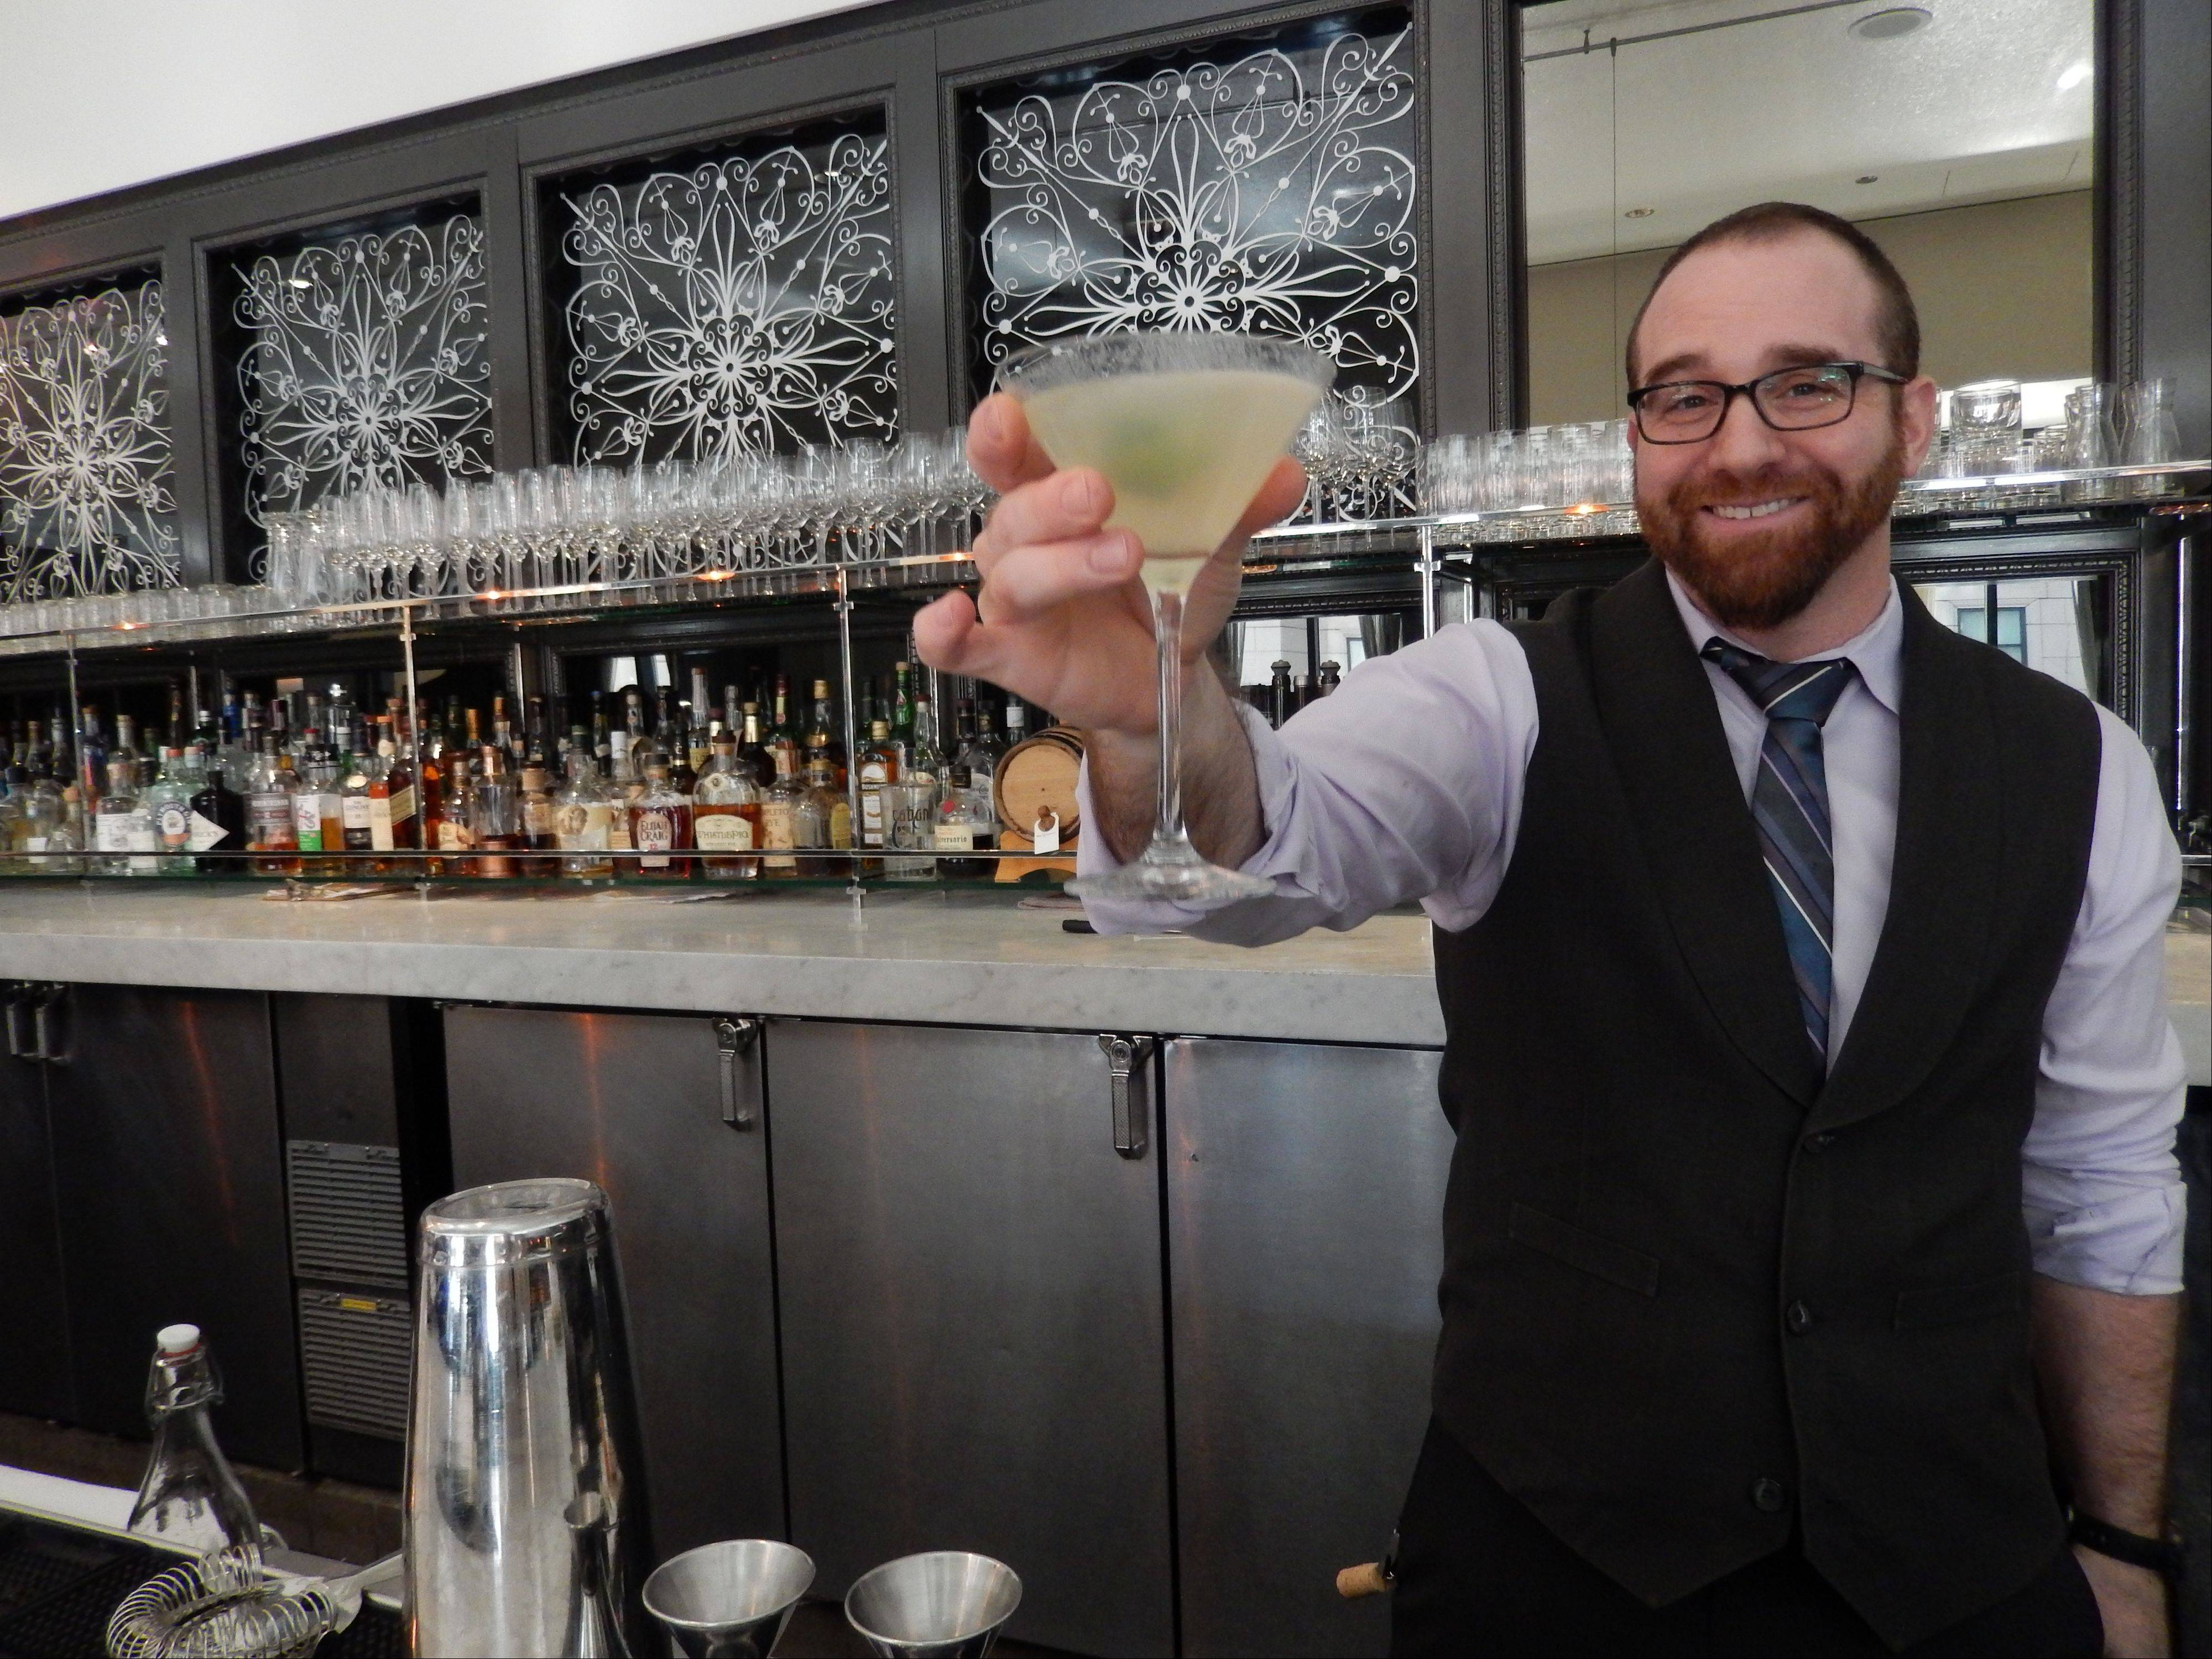 Balsan bartender Michael Kennedy serves up a fun twist on the Moscow Mule at the Chicago restaurant.